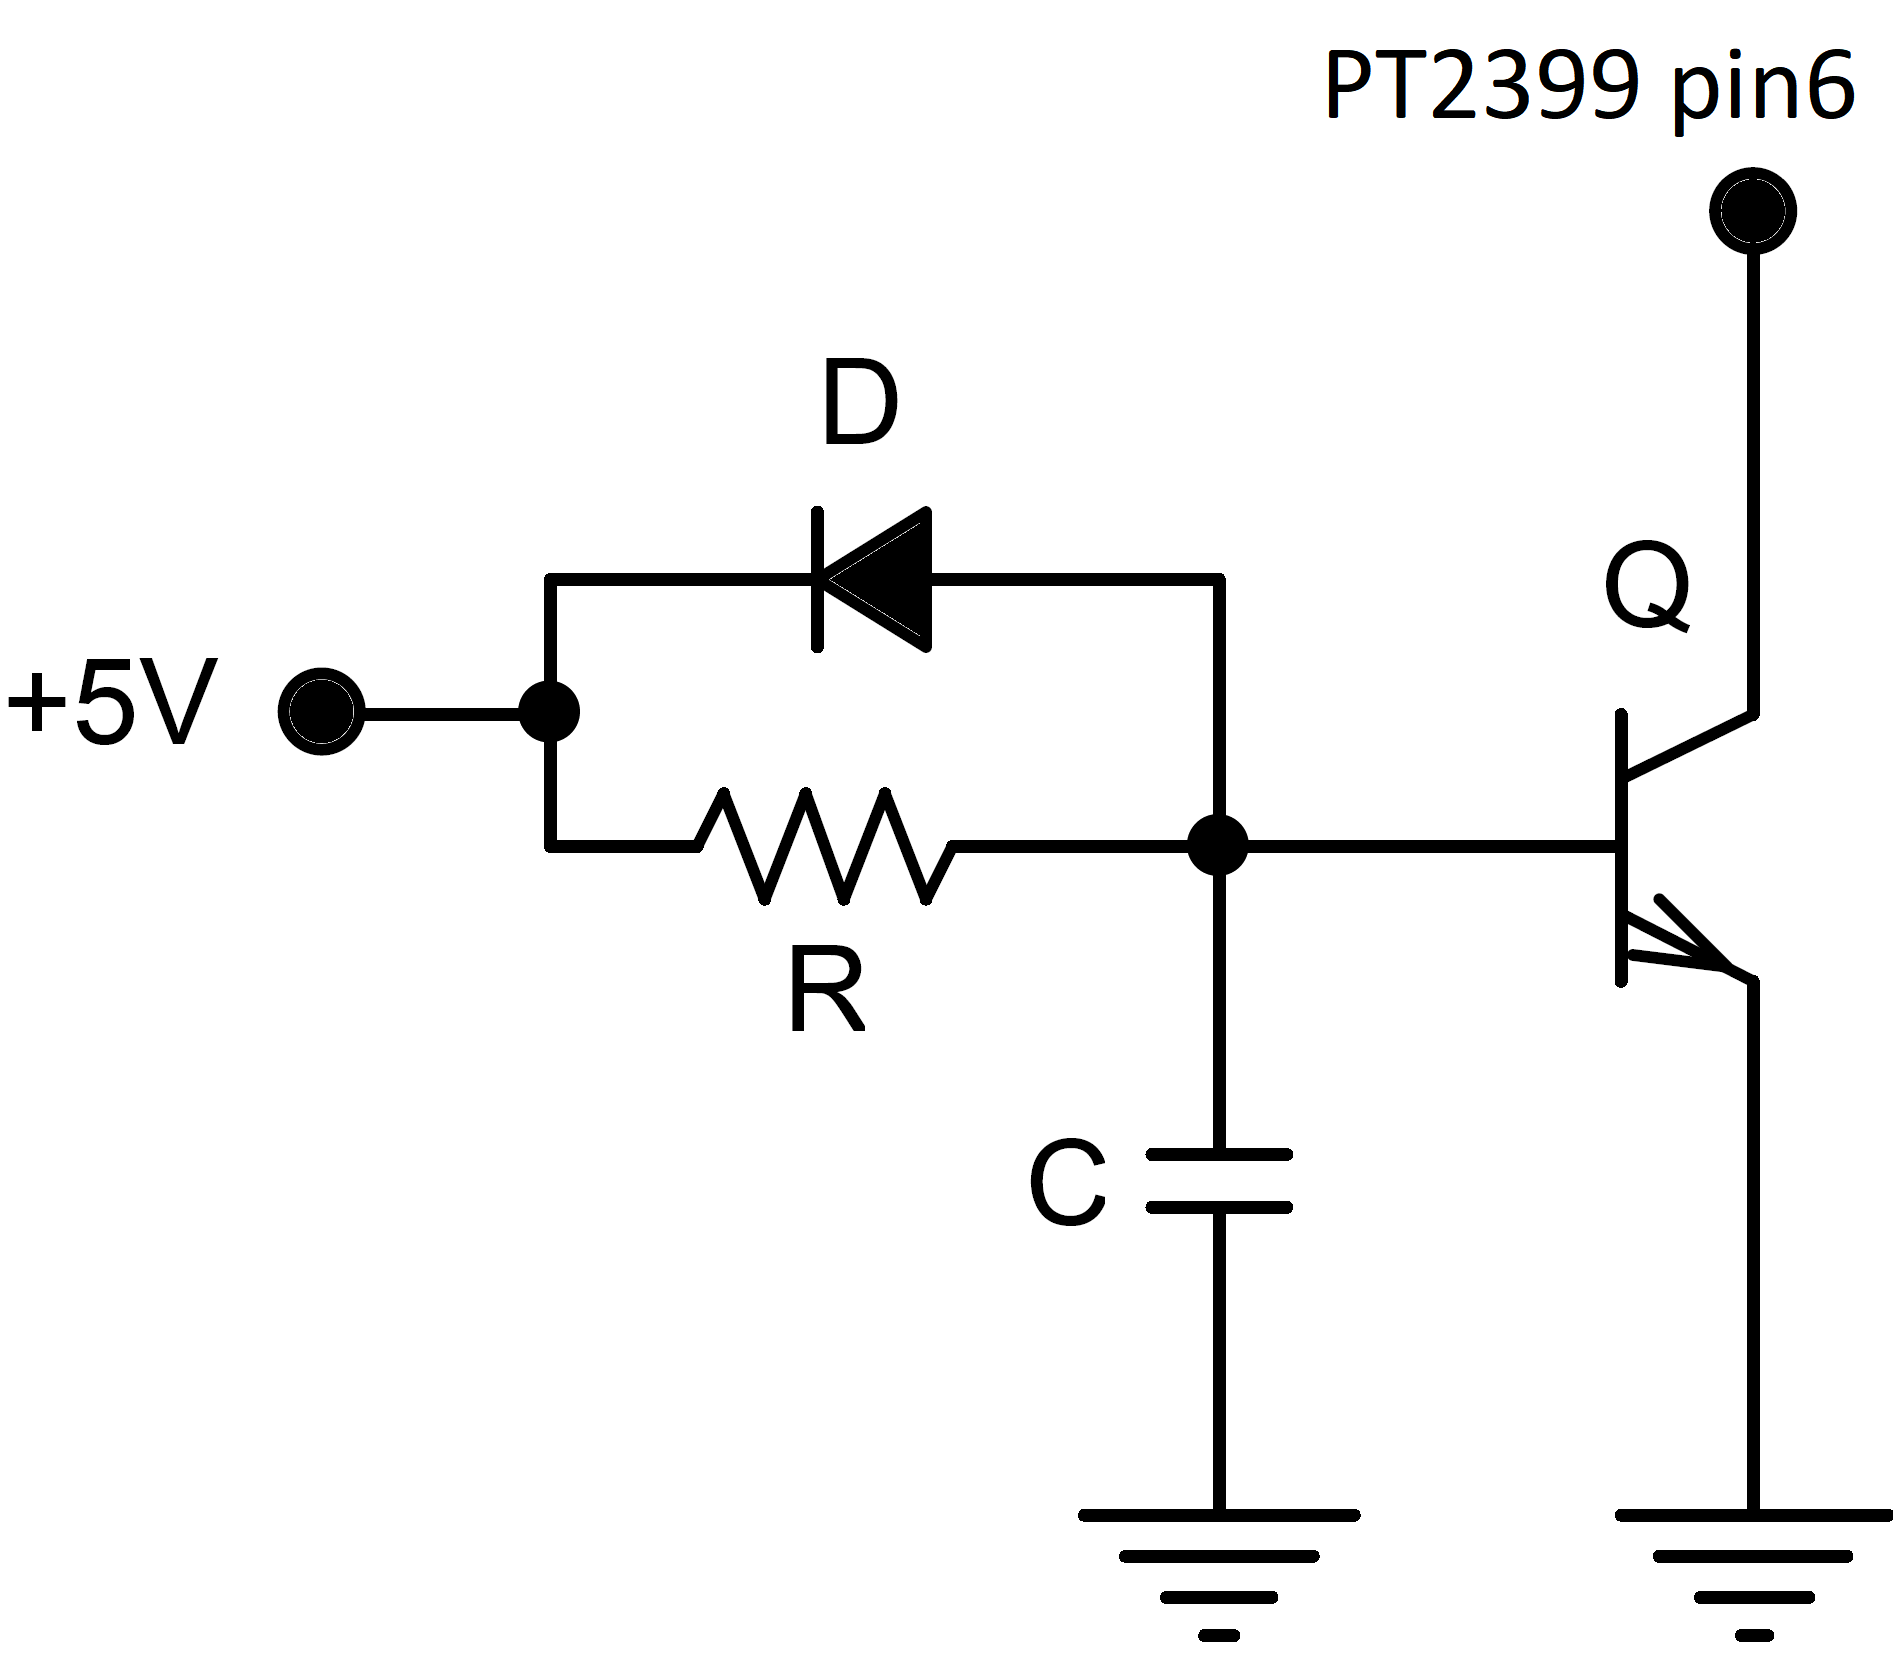 Electrosmash Pt2399 Analysis Electronics Technology Voltage Cut Off Circuit Using Time Delay Latch Up